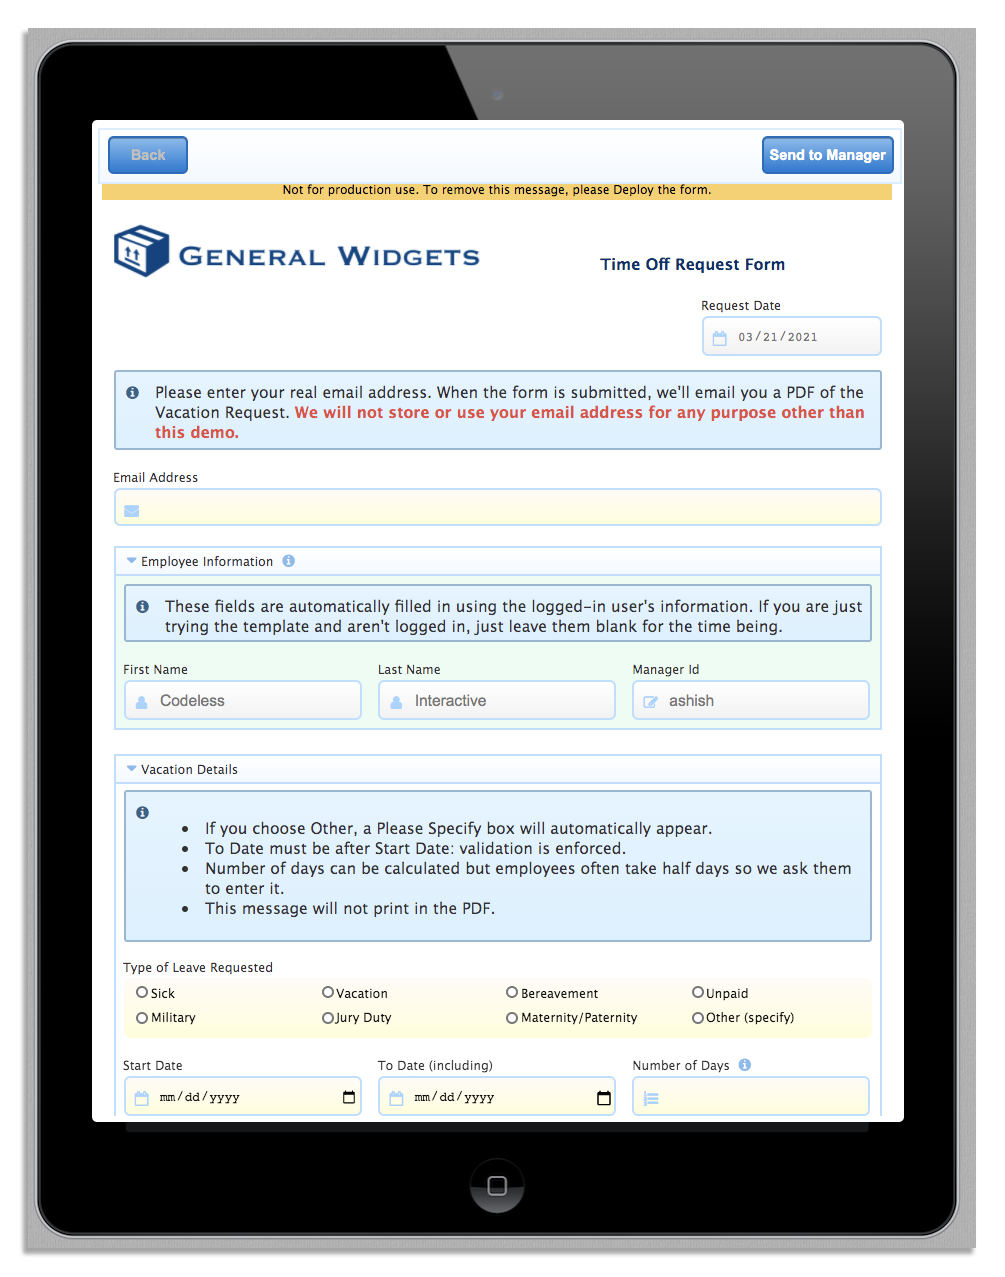 Testing a workflow with frevvo's workflow automation software